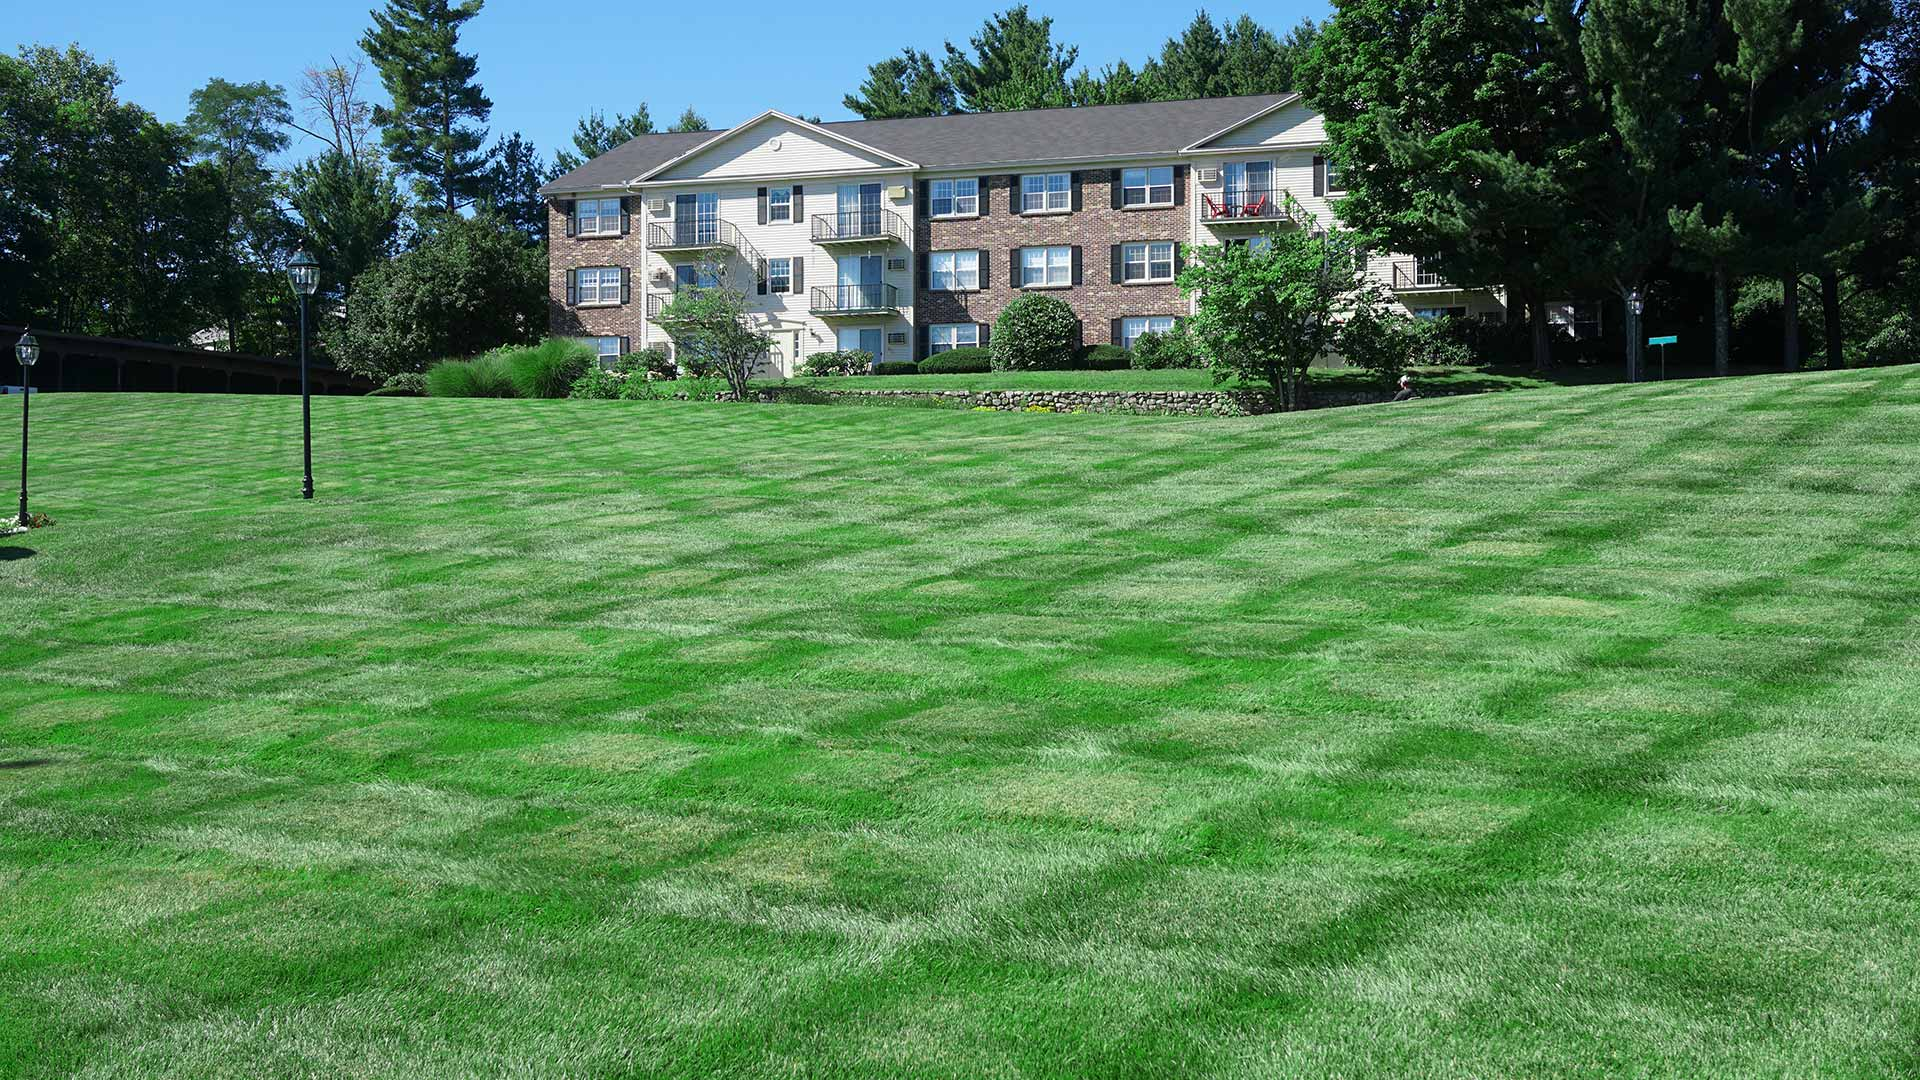 Fresh mowing lines near residential apartments in Bristow, VA.